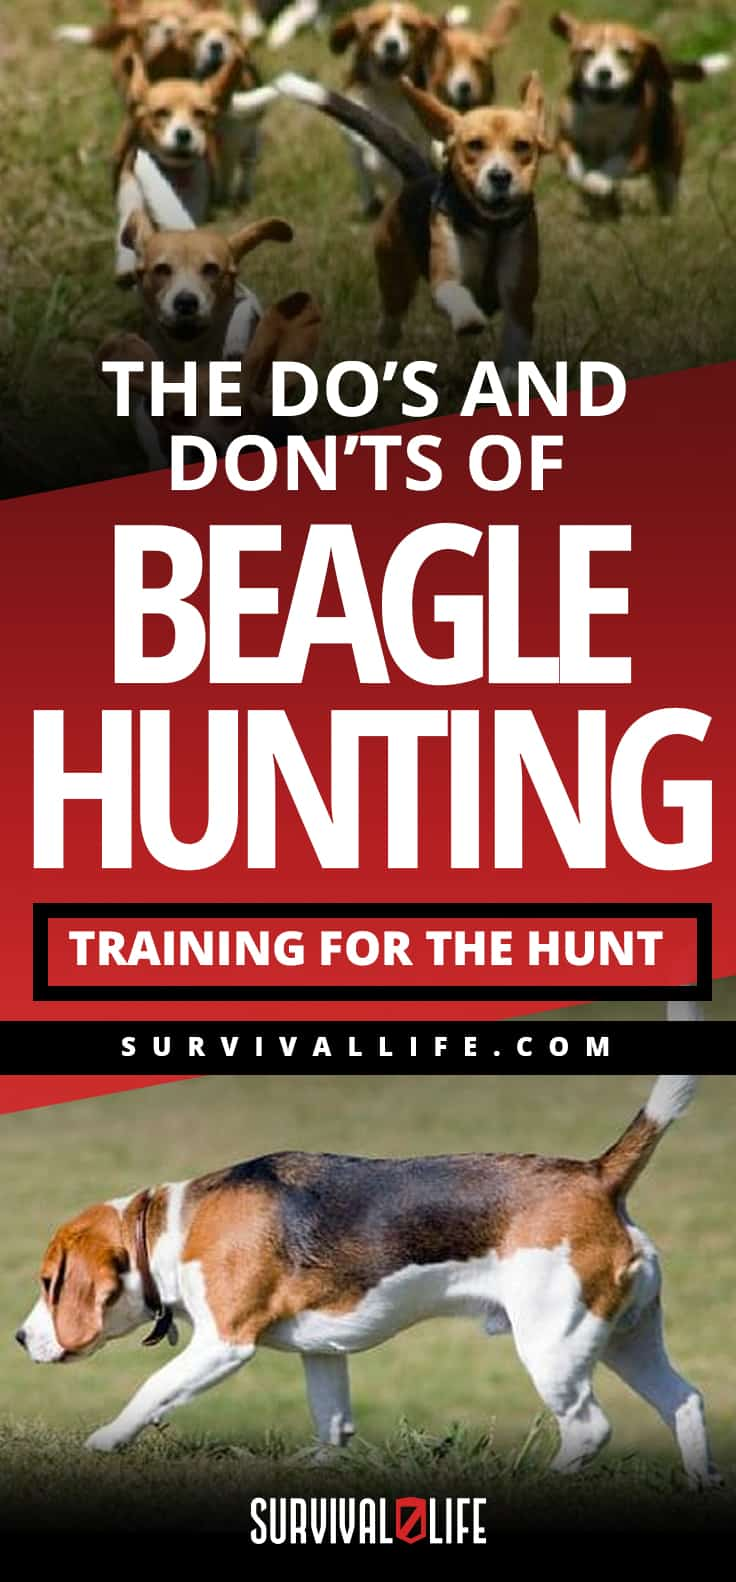 The Do's And Don'ts Of Beagle Hunting - Training For The Hunt | https://survivallife.com/beagle-hunting/